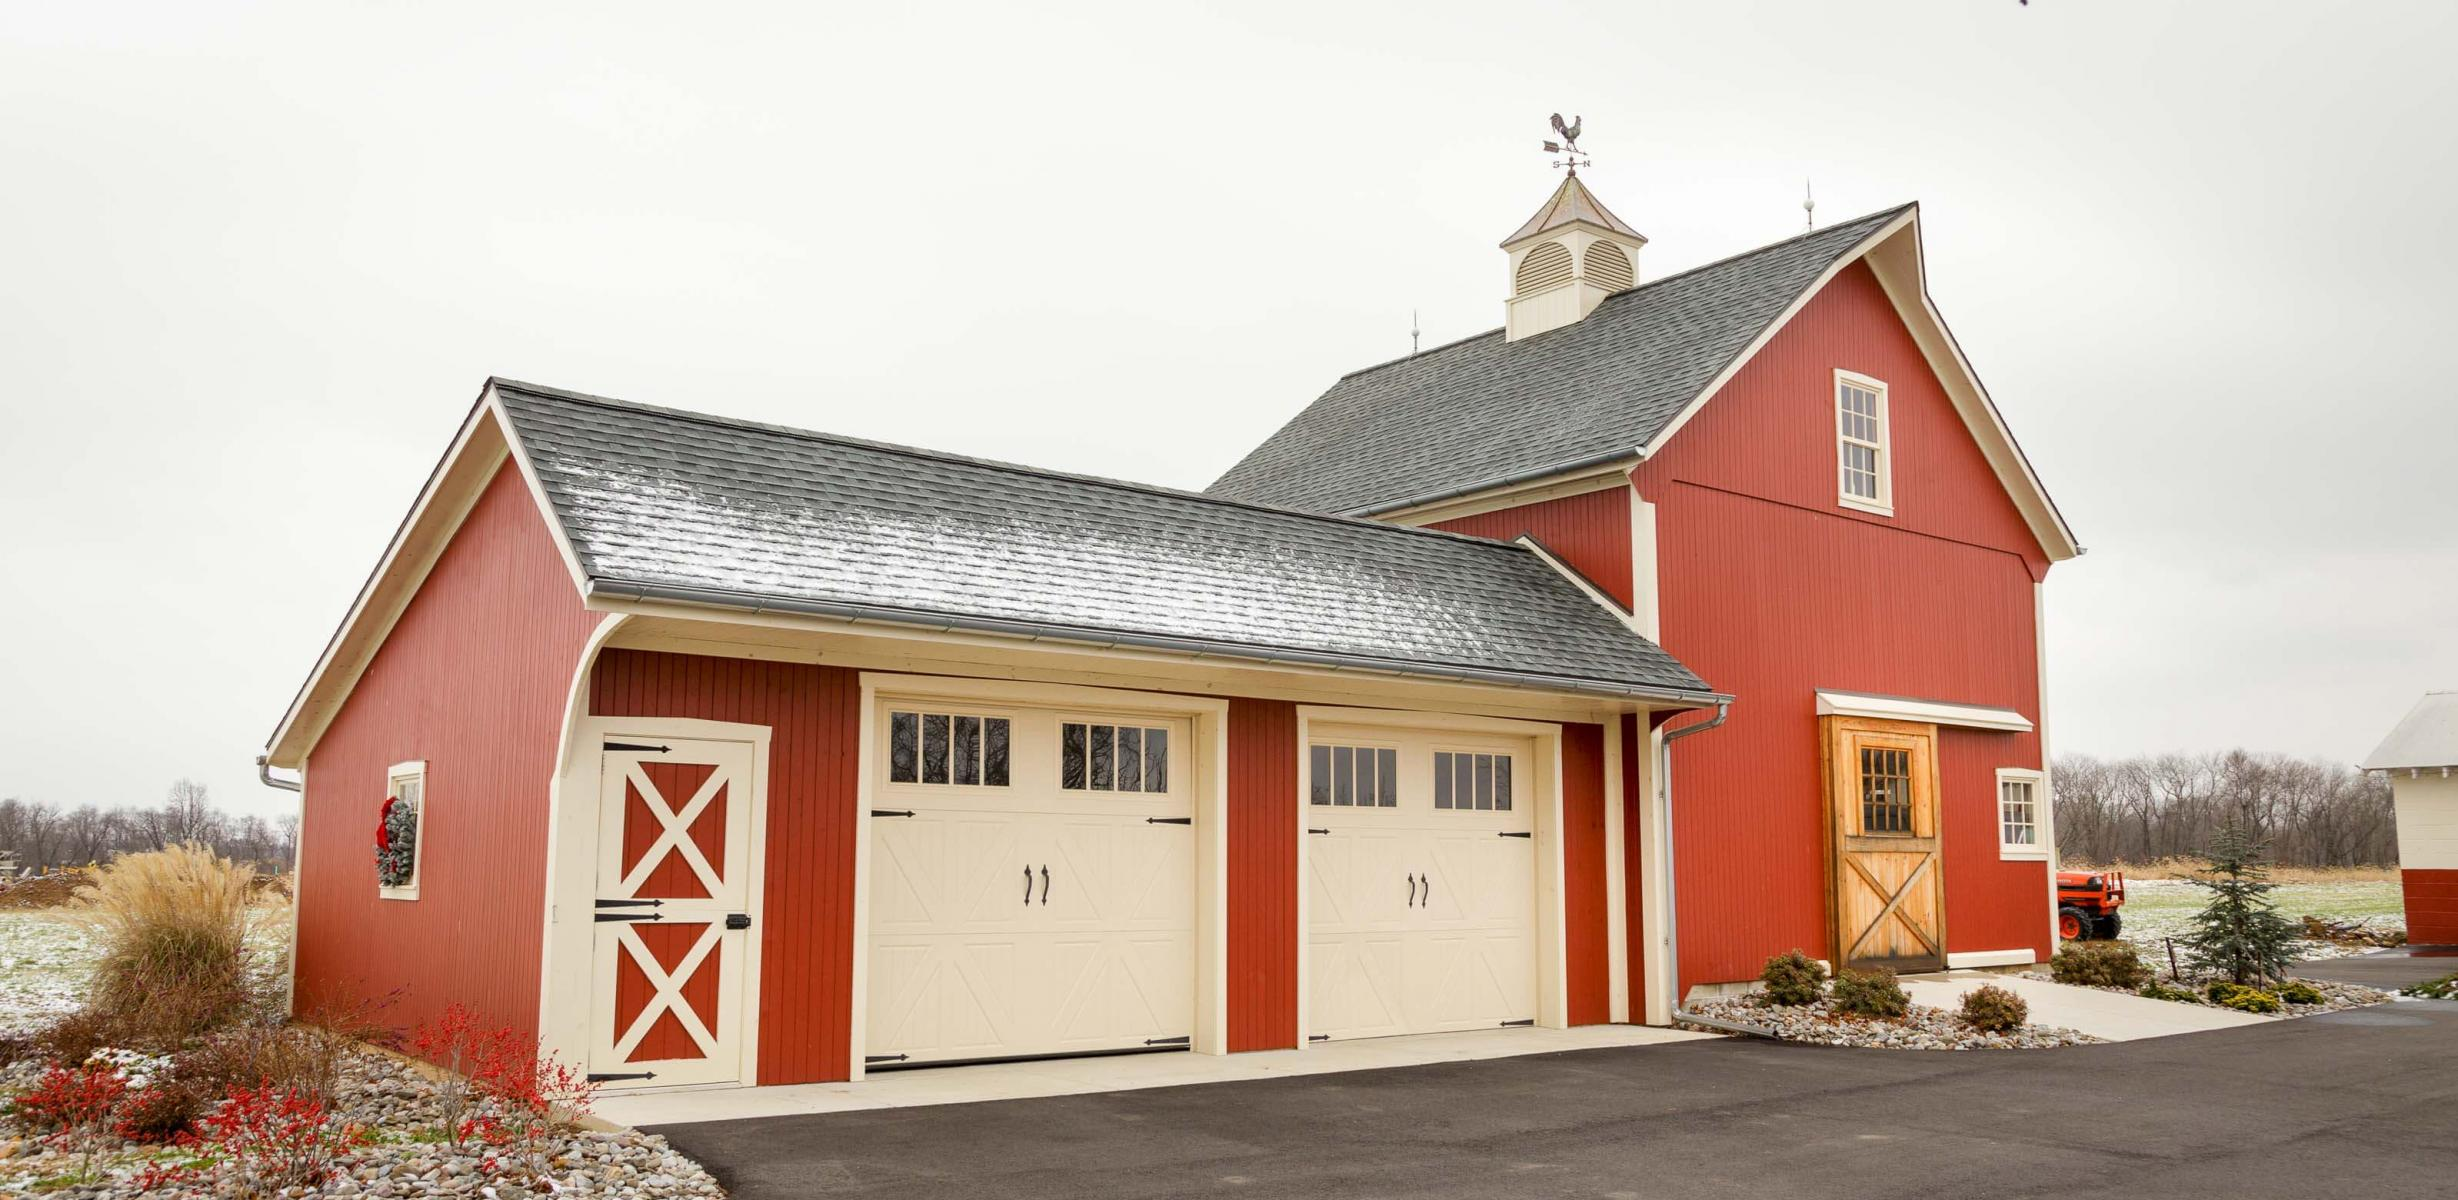 Restored barn with attached garage.